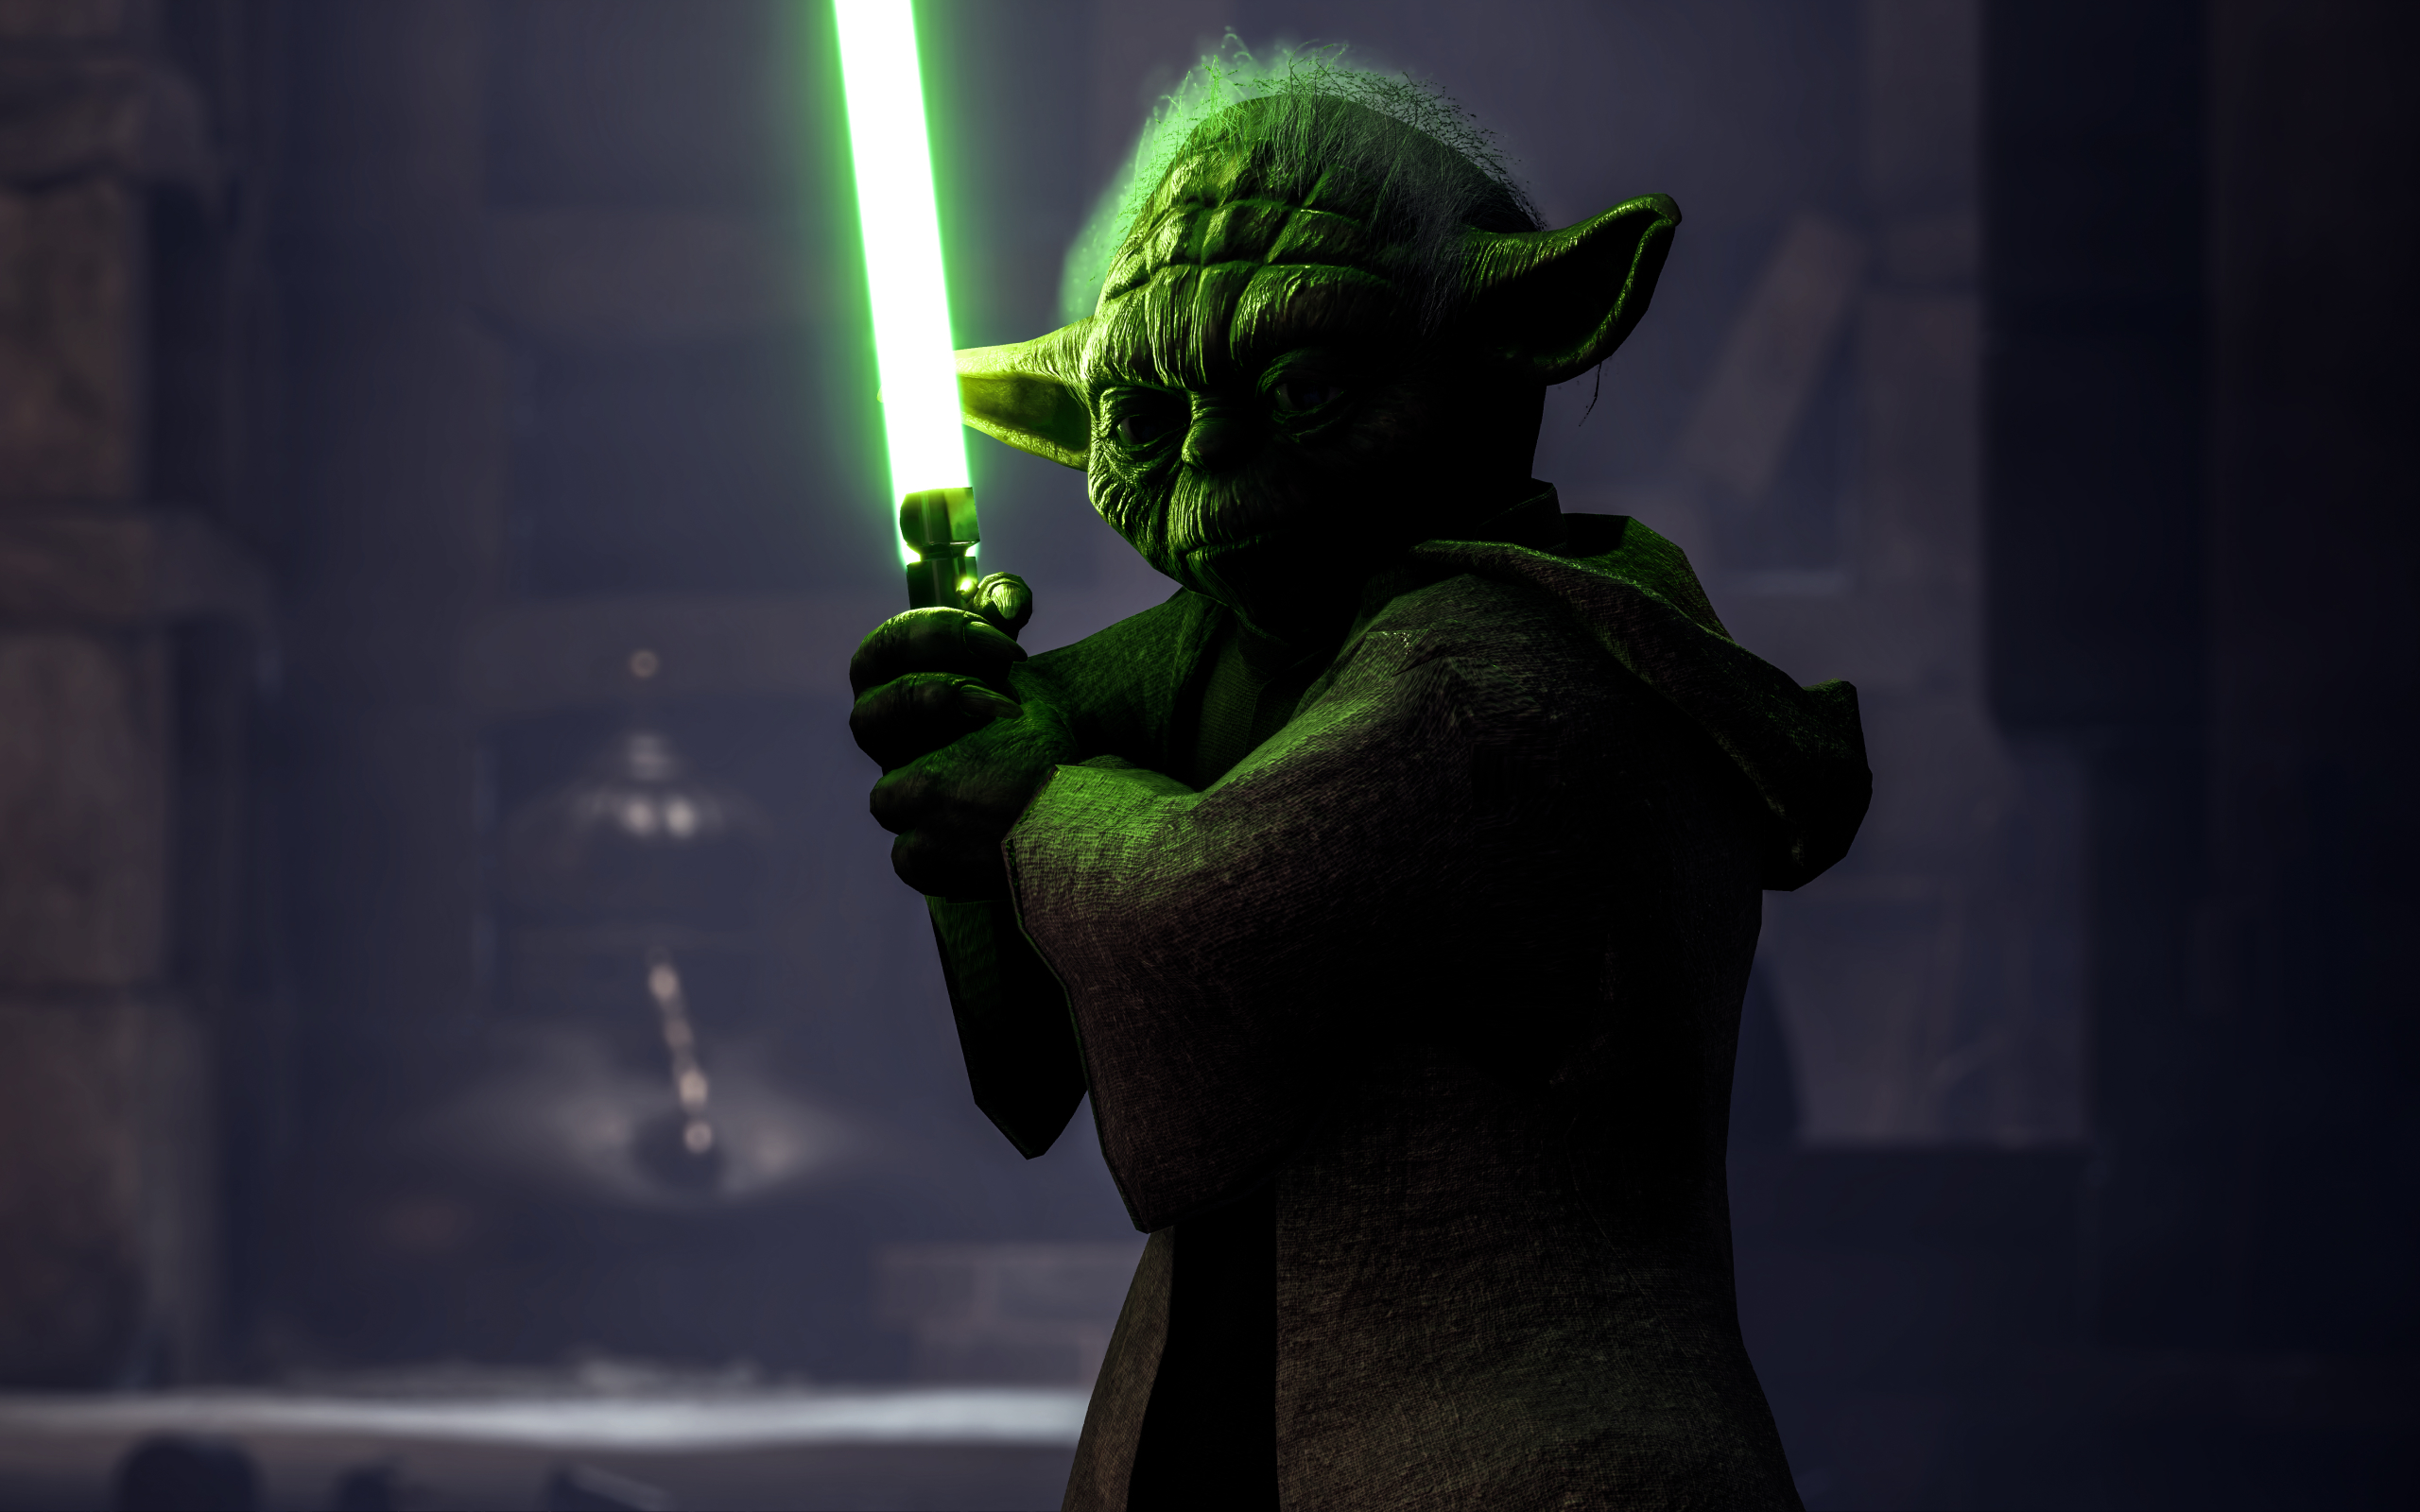 Wallpaper Video Game Yoda Star Wars Battlefront Ii 2017 Ubackground Com